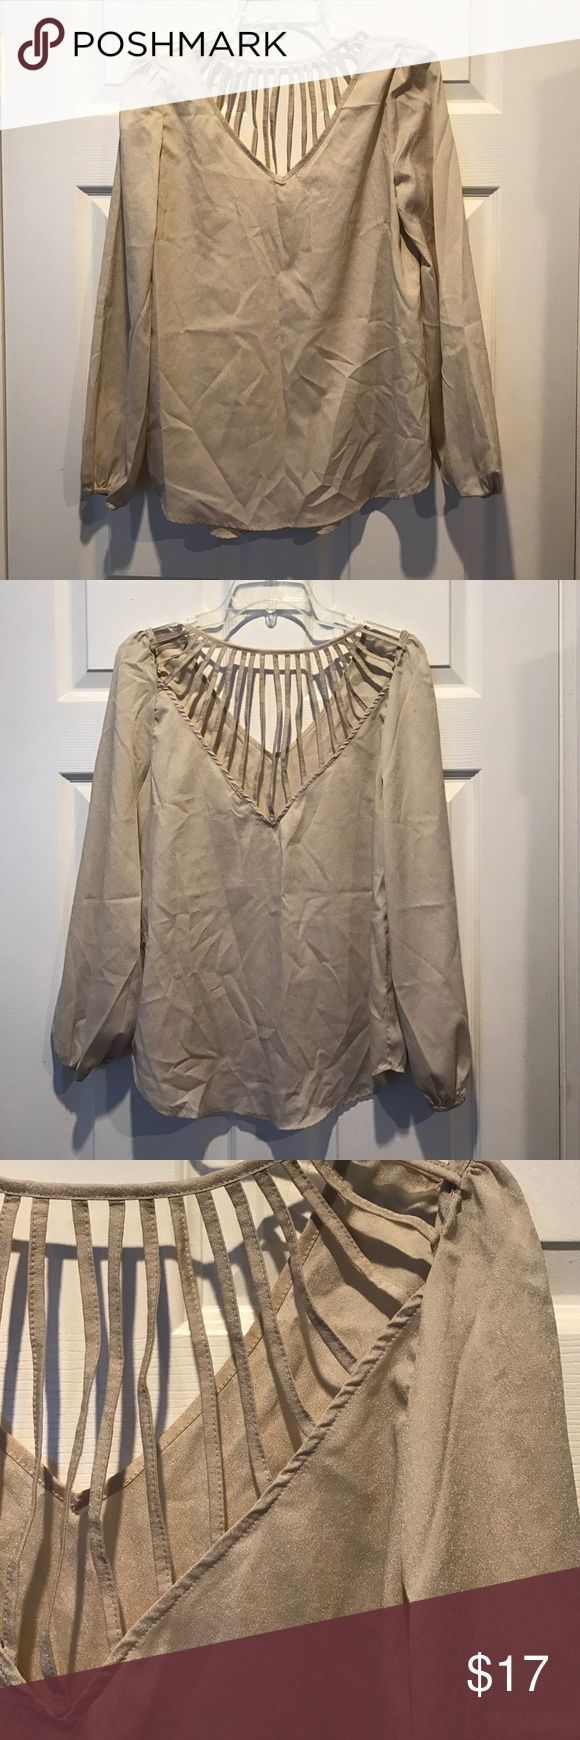 Strappy Back Beige Blouse Worn once, excellent condition. Bought from boutique. Fits M/L Tops Blouses